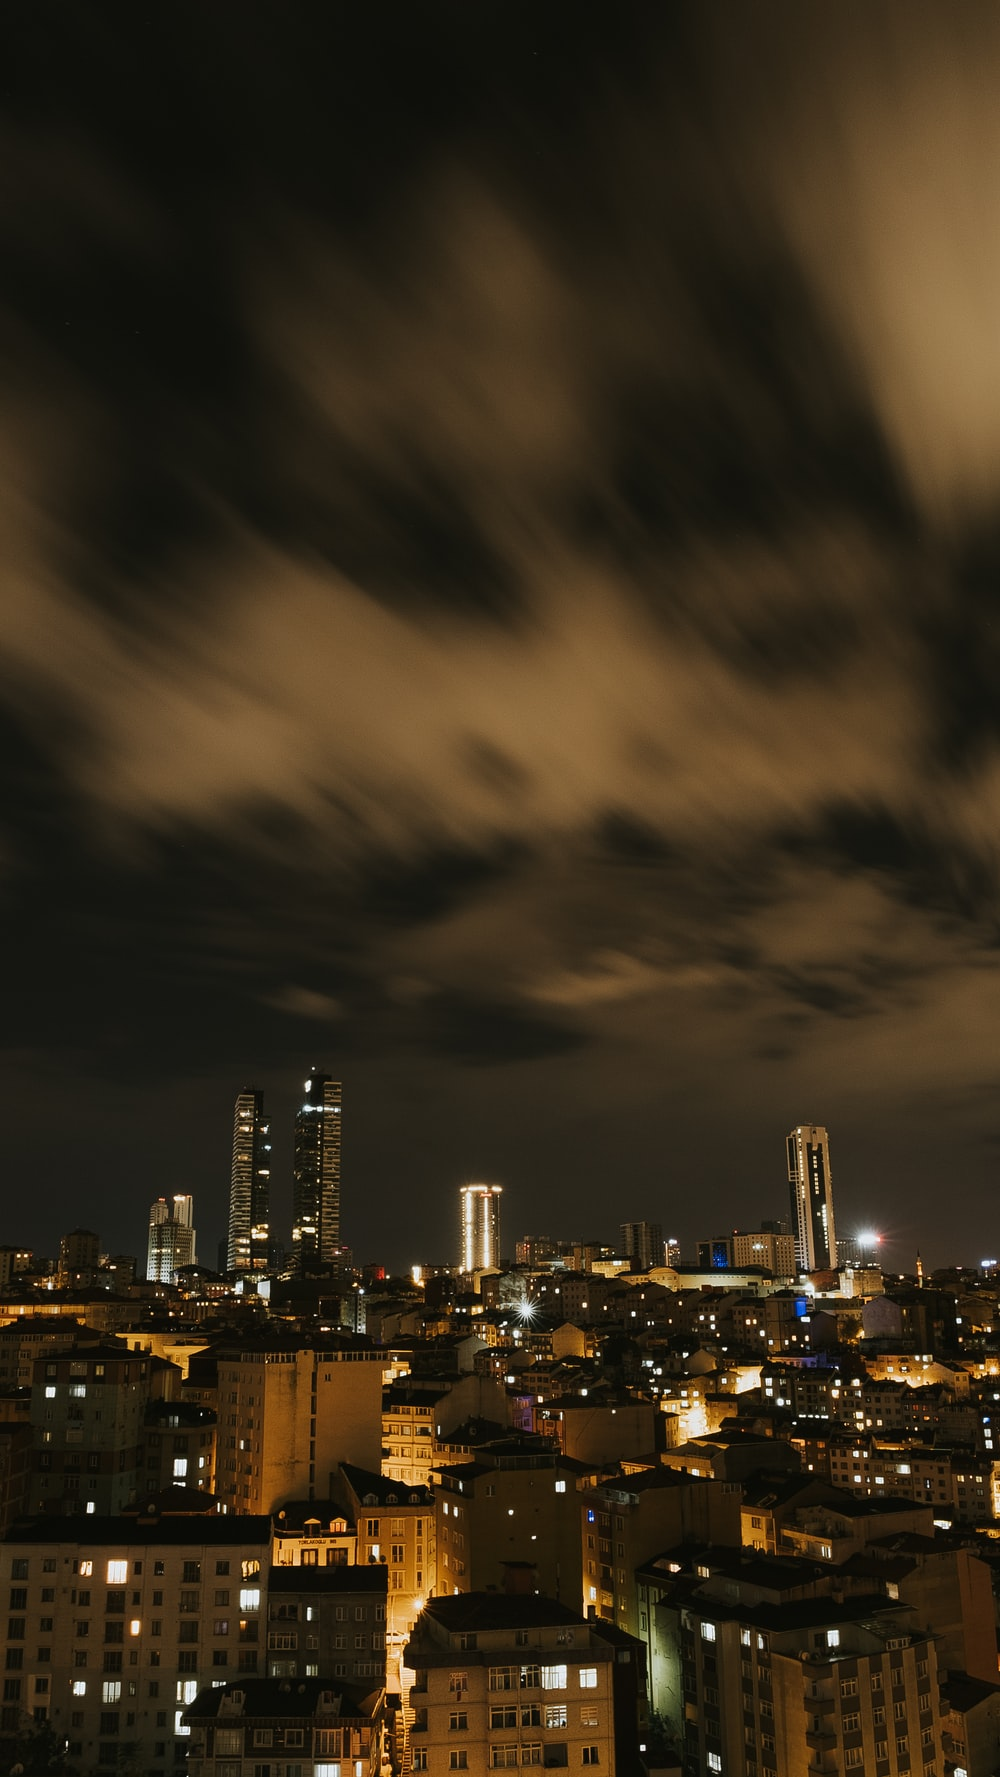 city skyline under gray clouds during night time